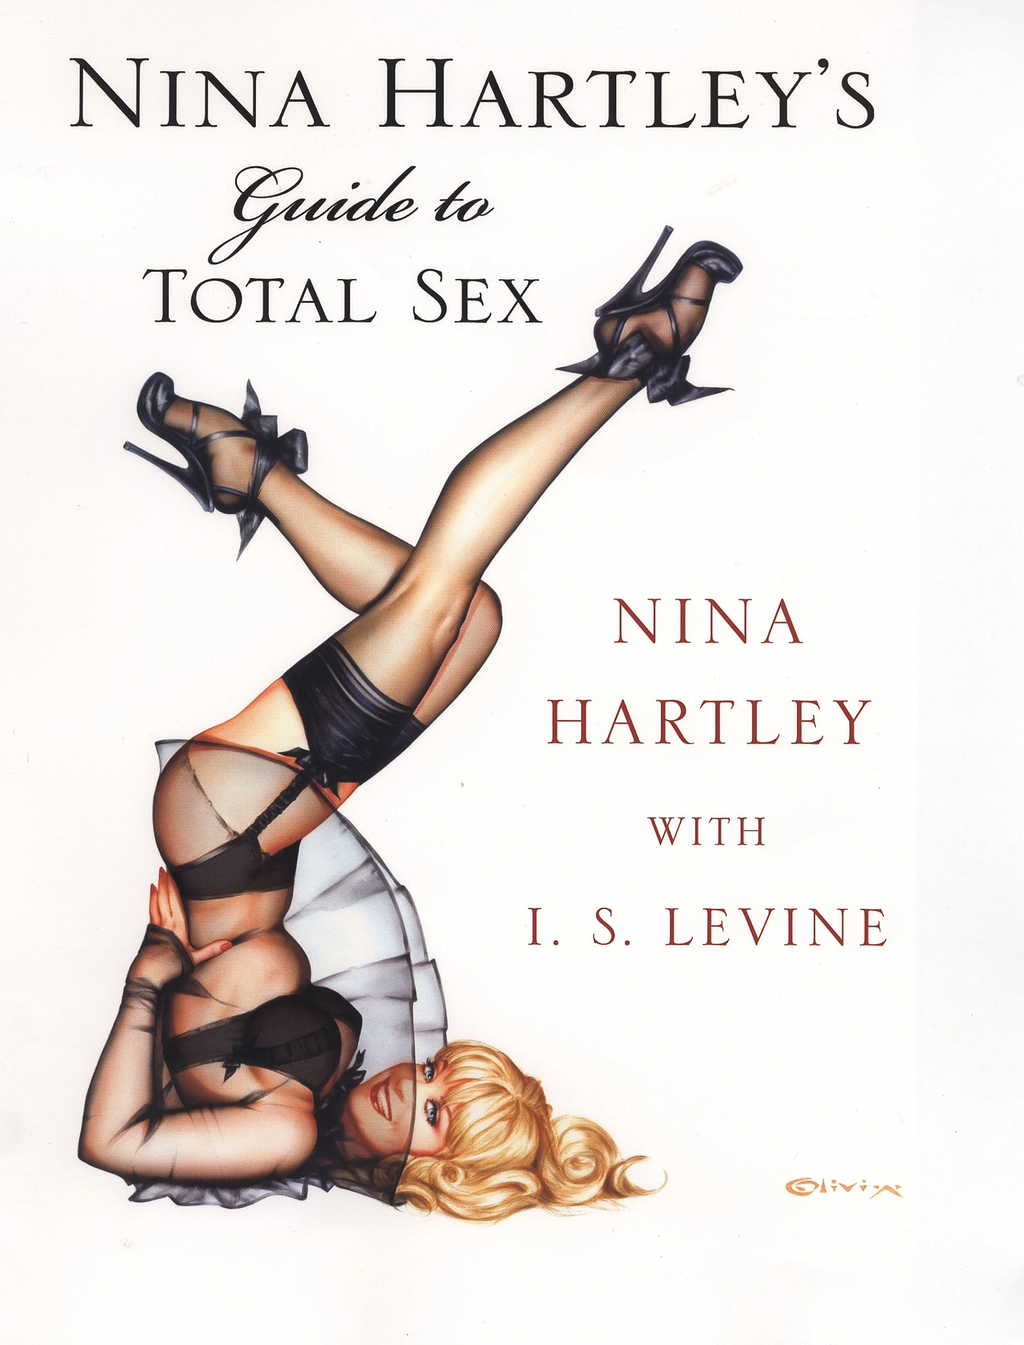 Nina Hartley's Guide to Total Sex By: Nina Hartley